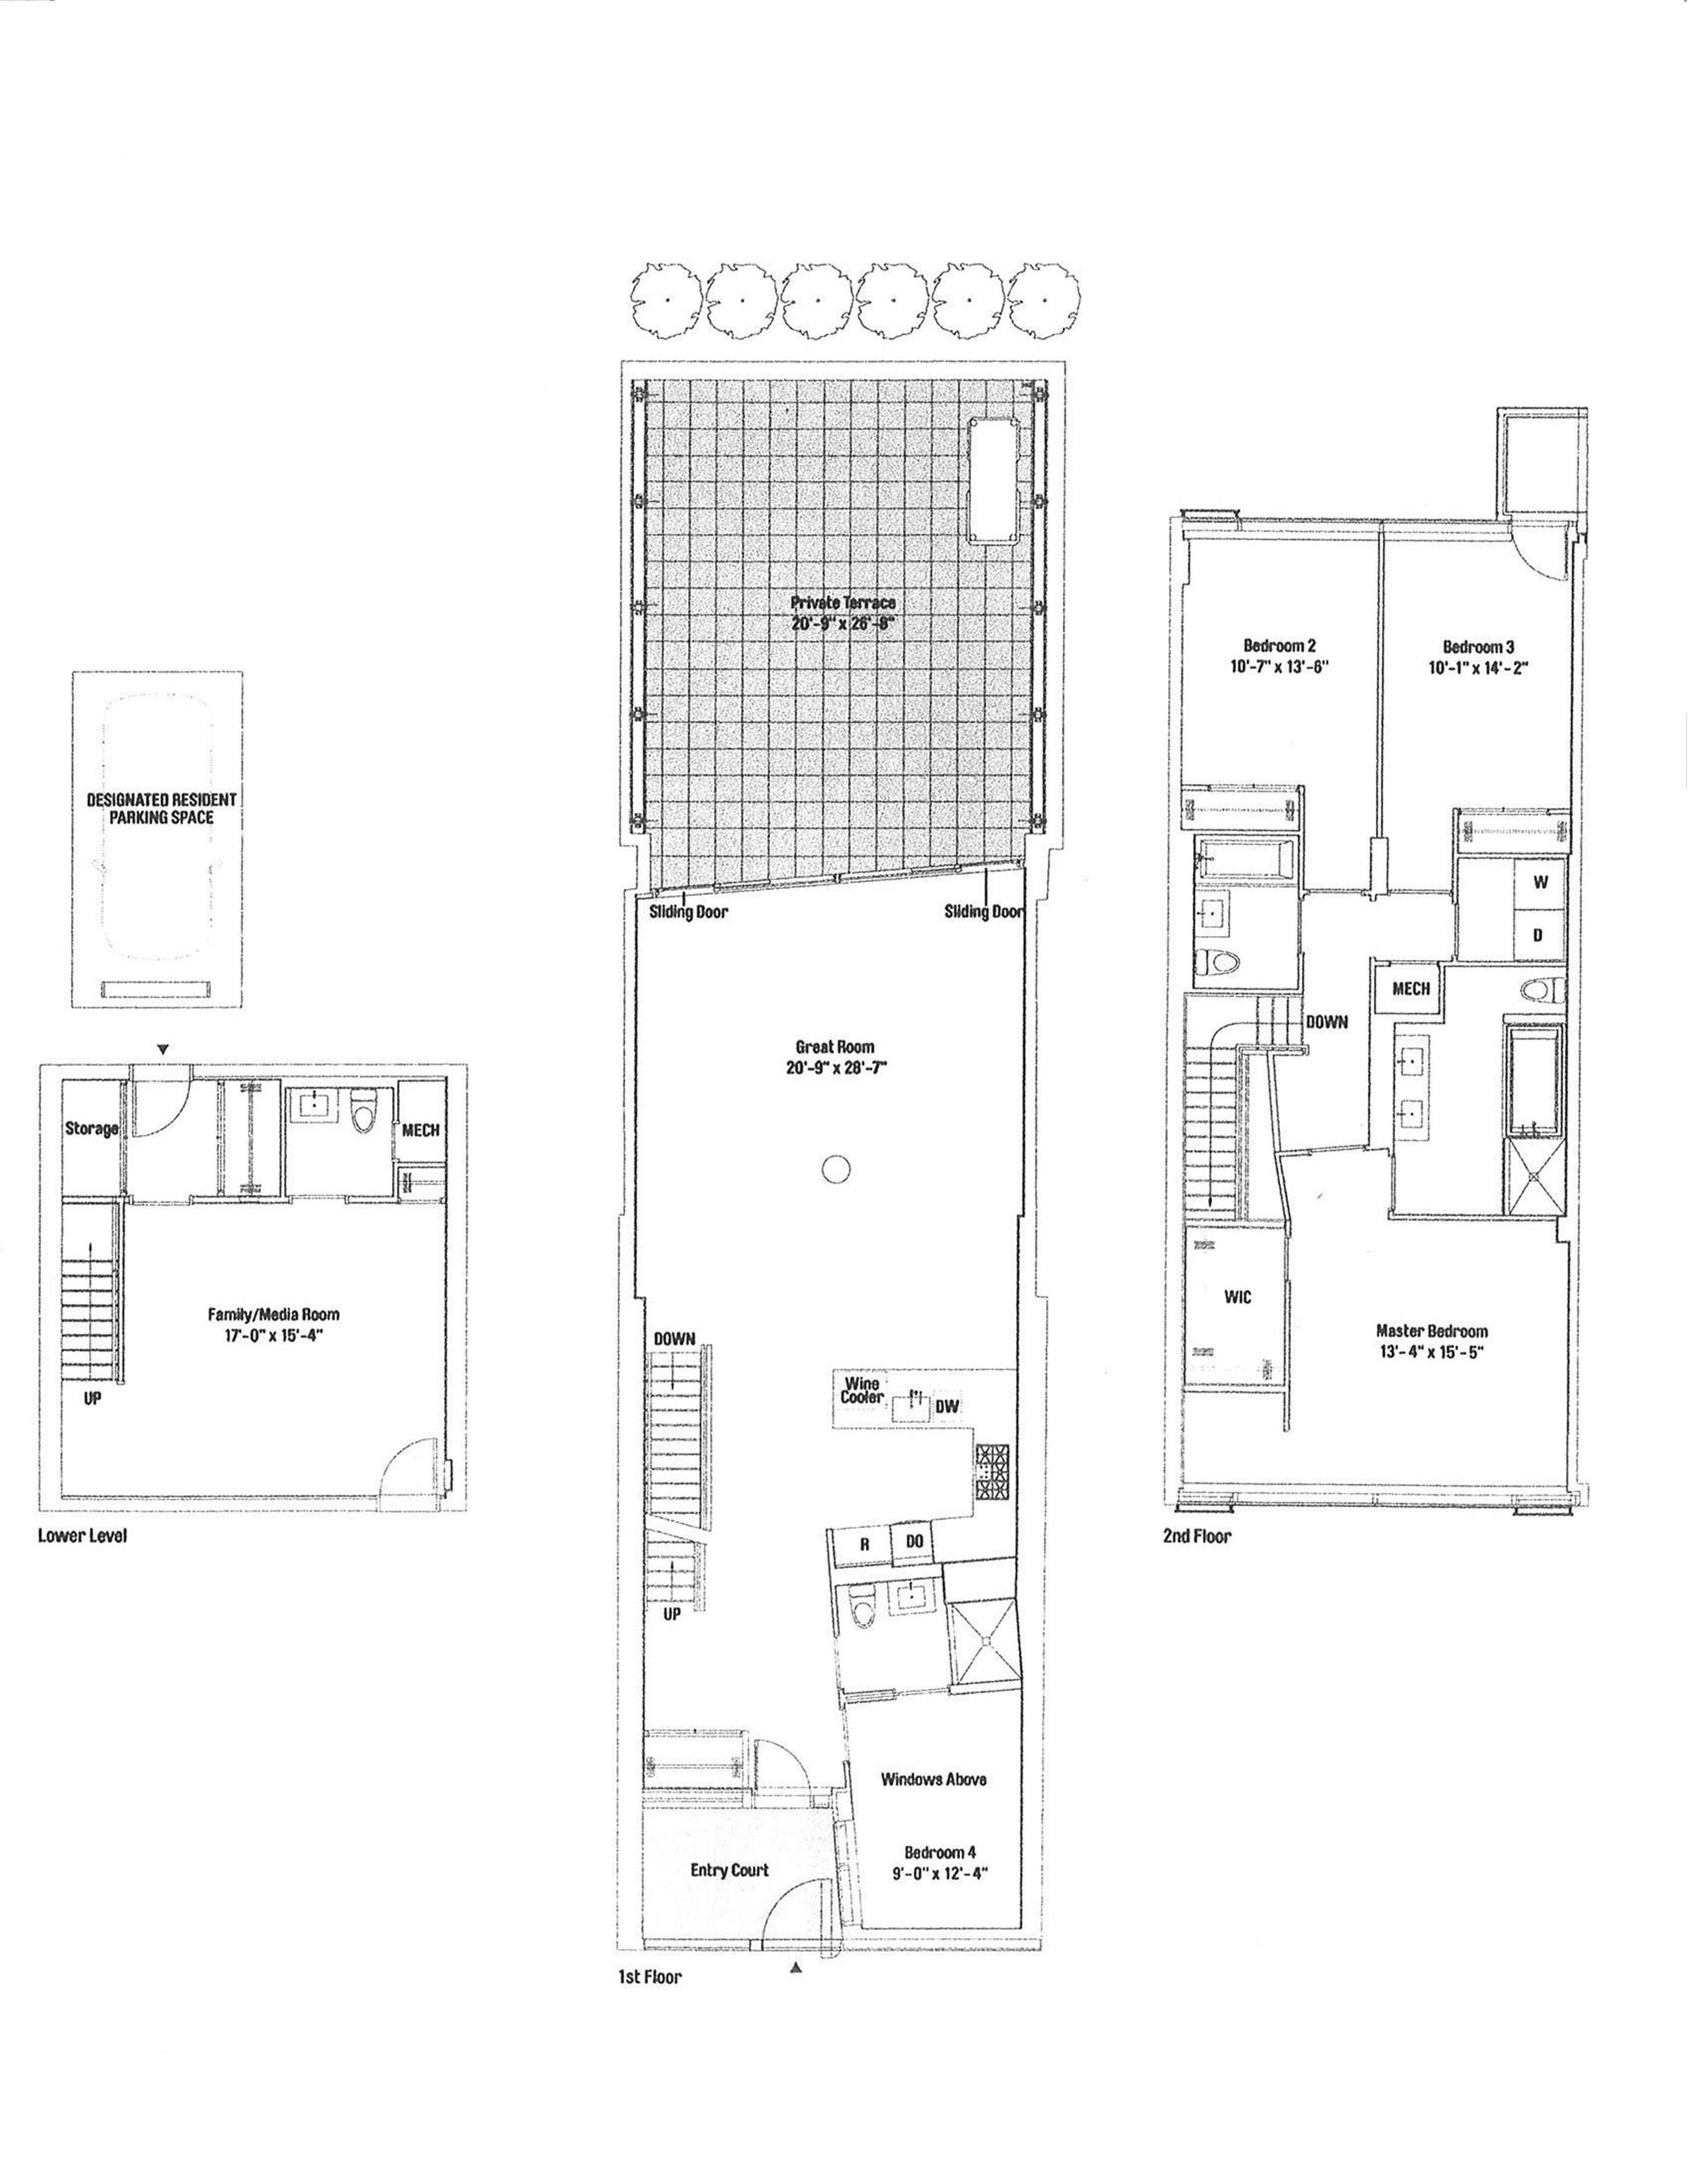 Floor plan of The Dillon, 425 West 53rd St, TWNHSE409 - Clinton, New York